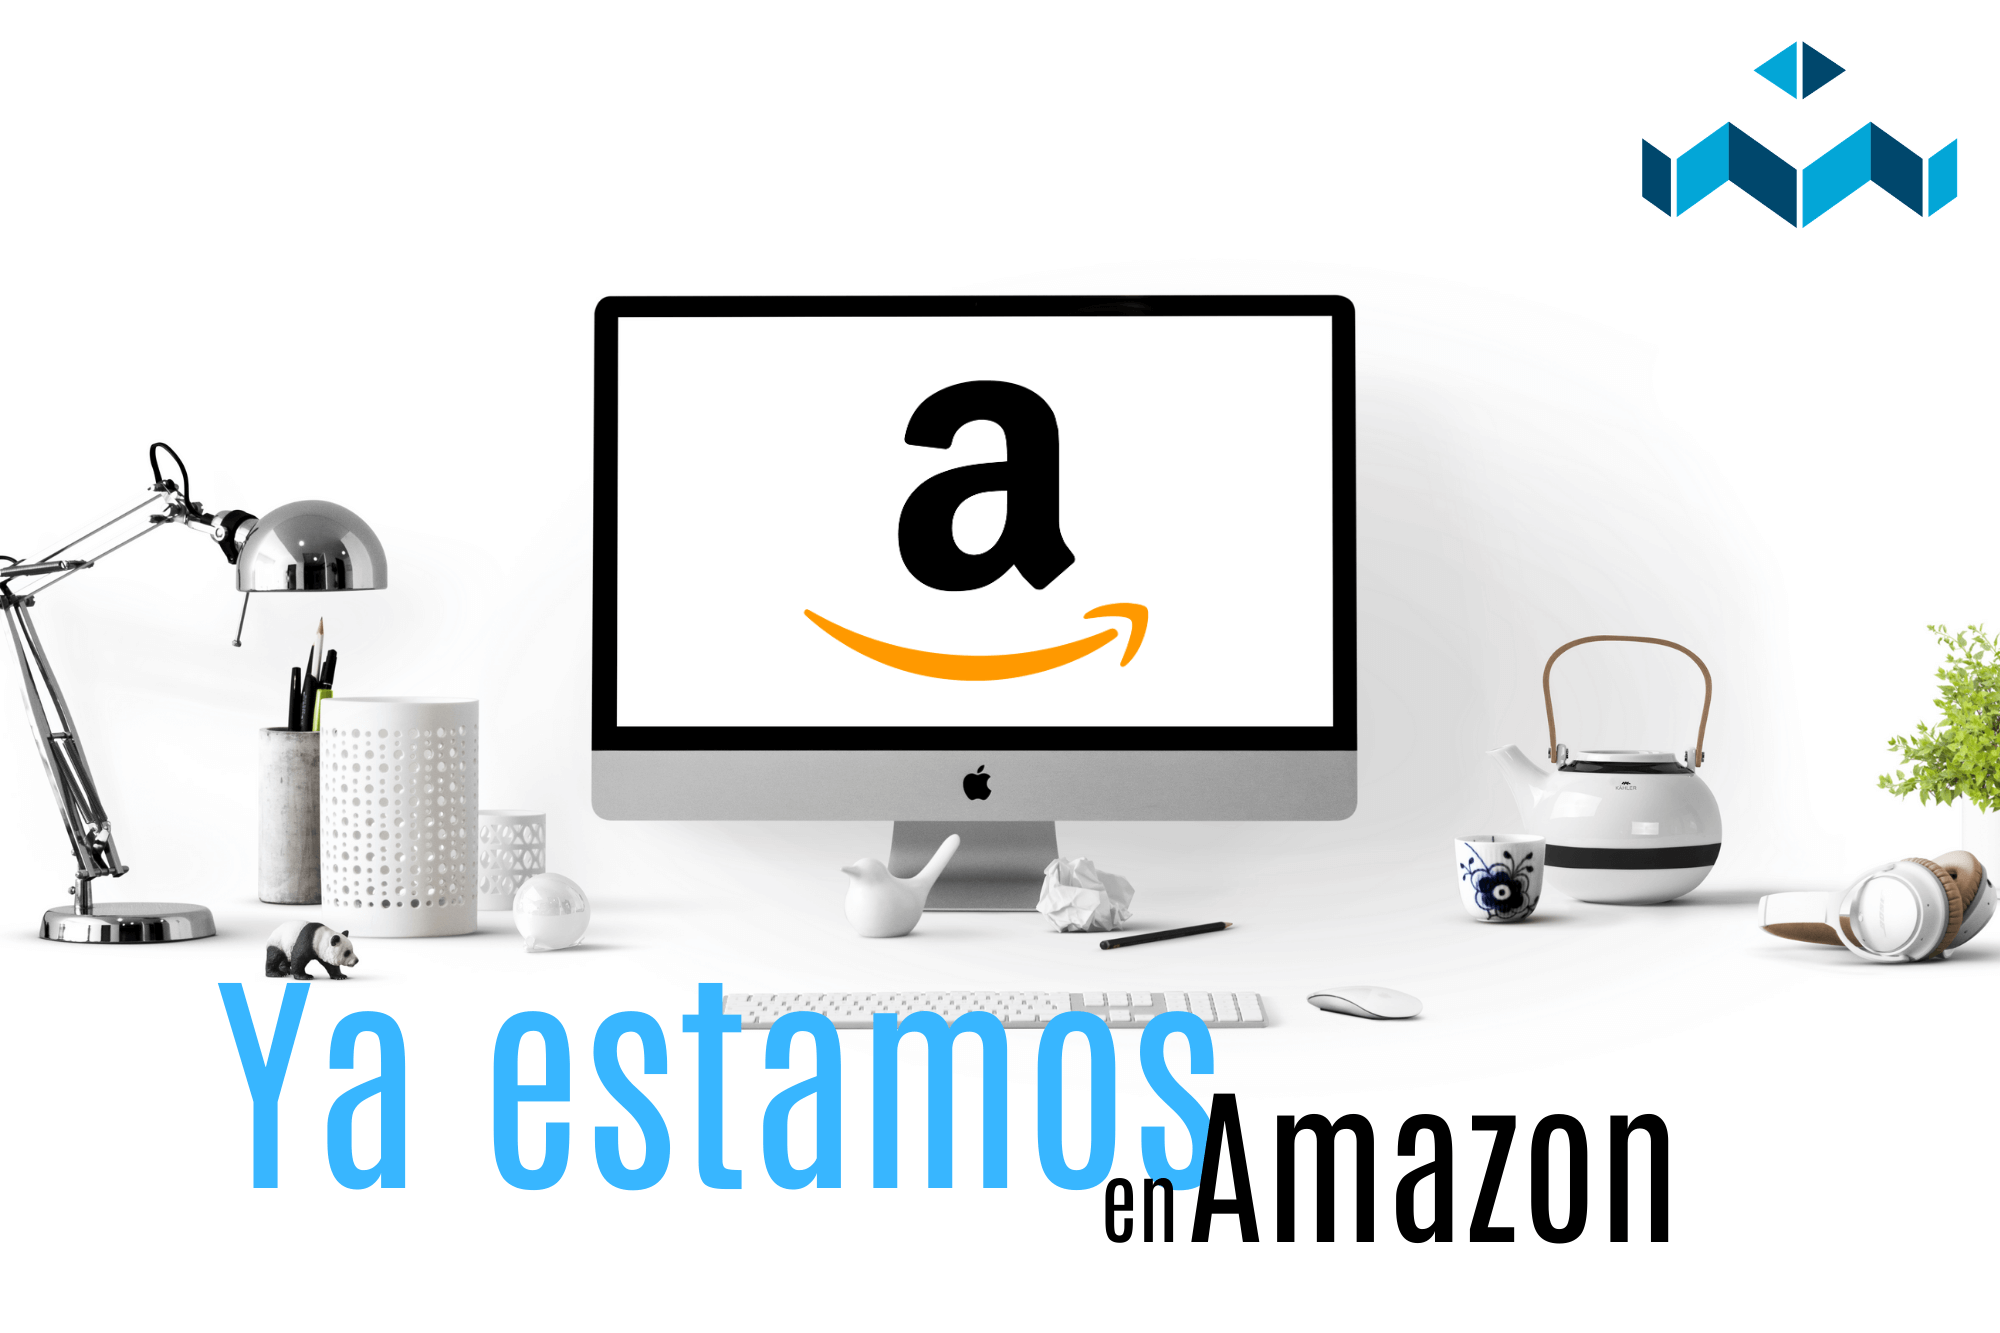 ¡Ya estamos en Amazon!